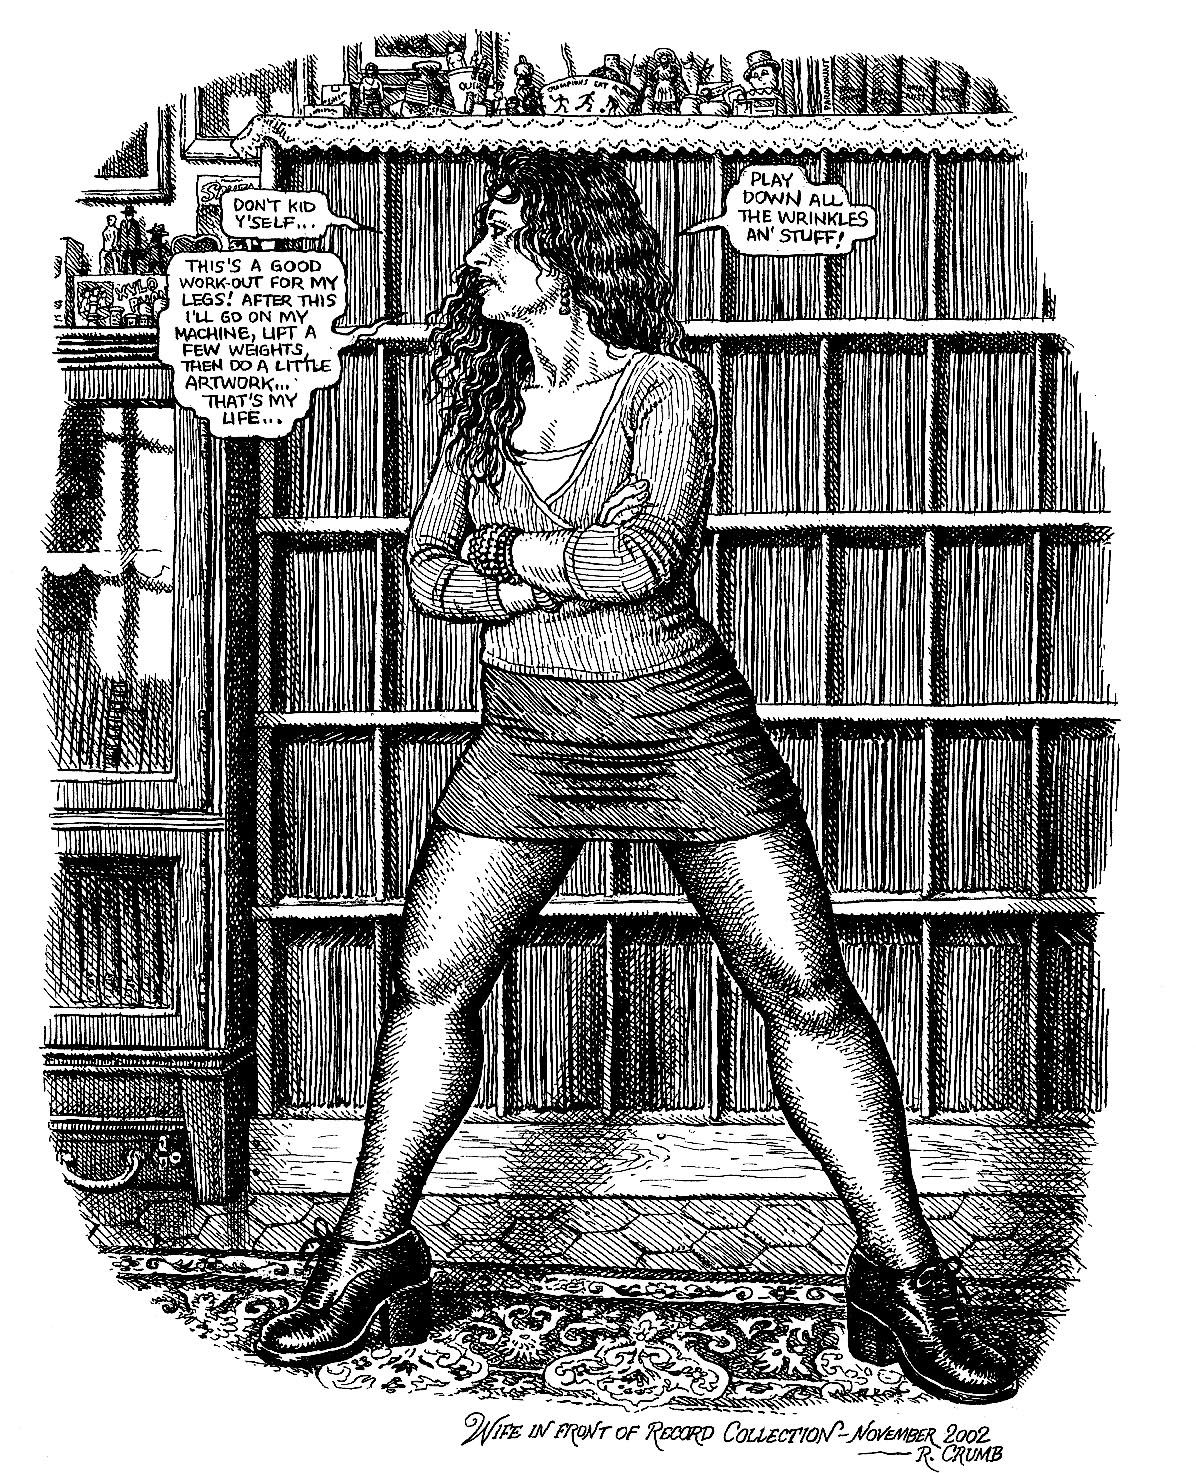 Robert Crumb's illustration of Aline Crumb while using his very own record collection as a background.